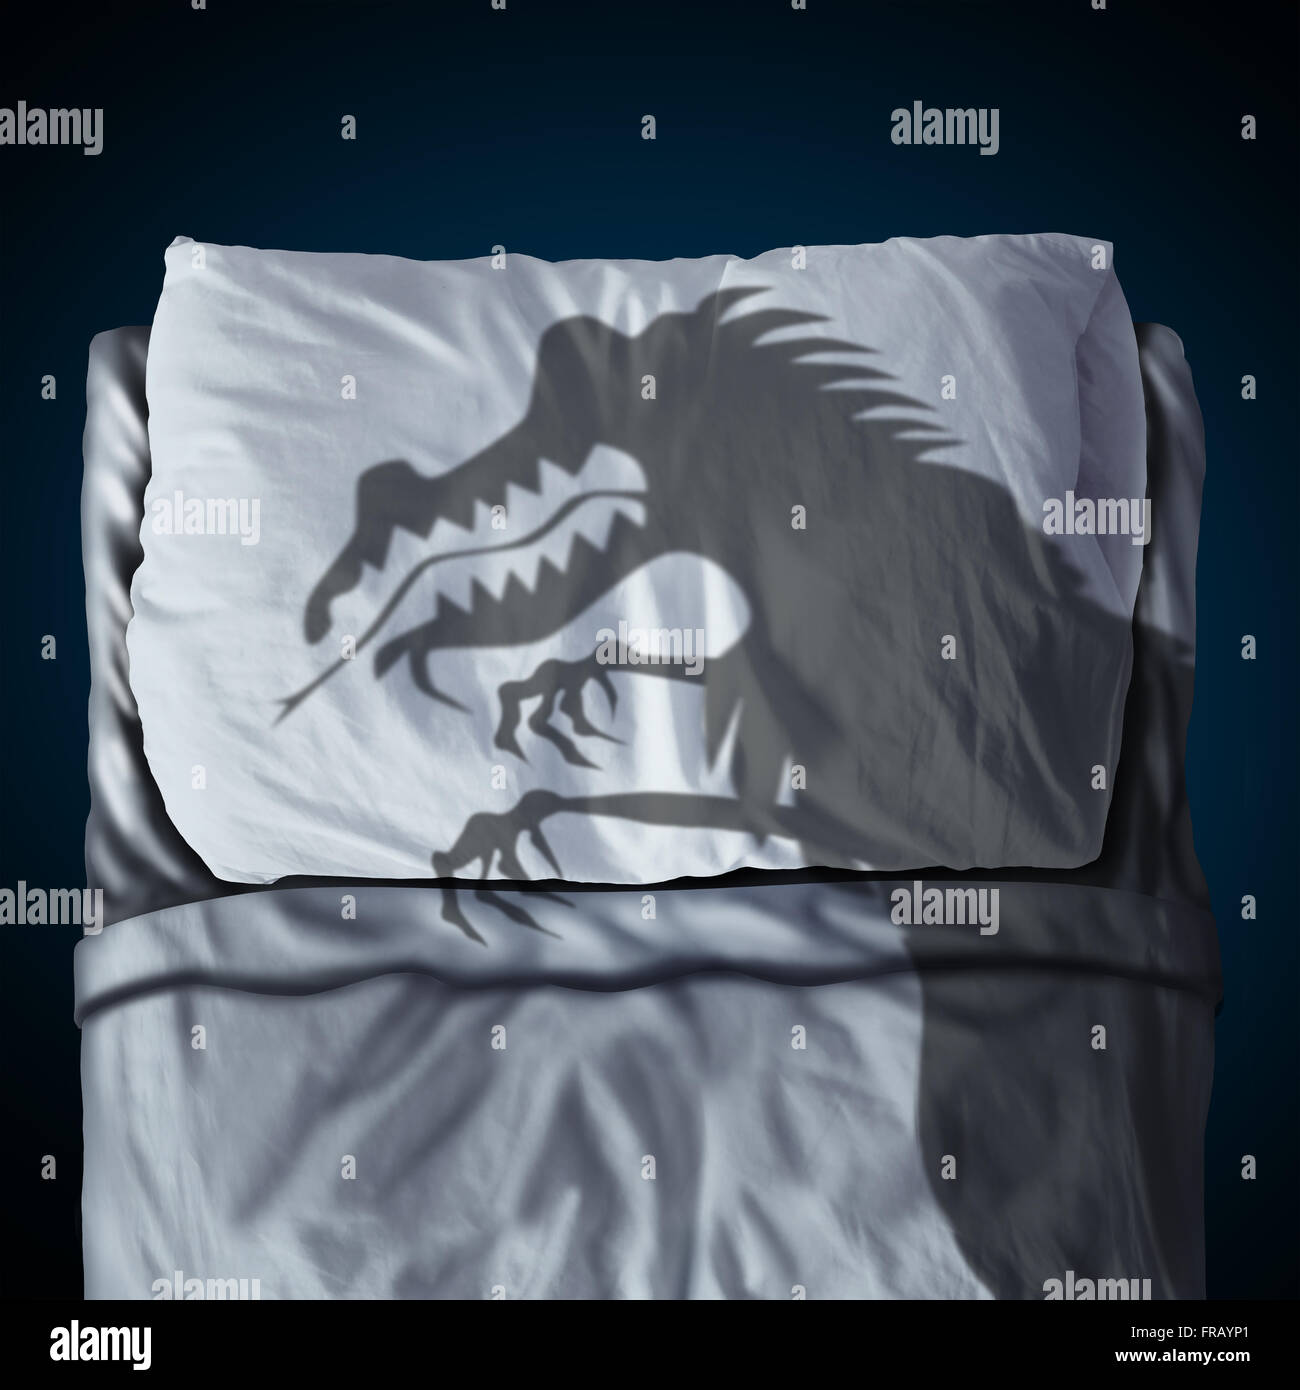 Nightmare and scary night dream concept as a cast shadow of a creepy monster on a bed with a pillow on a mattress - Stock Image